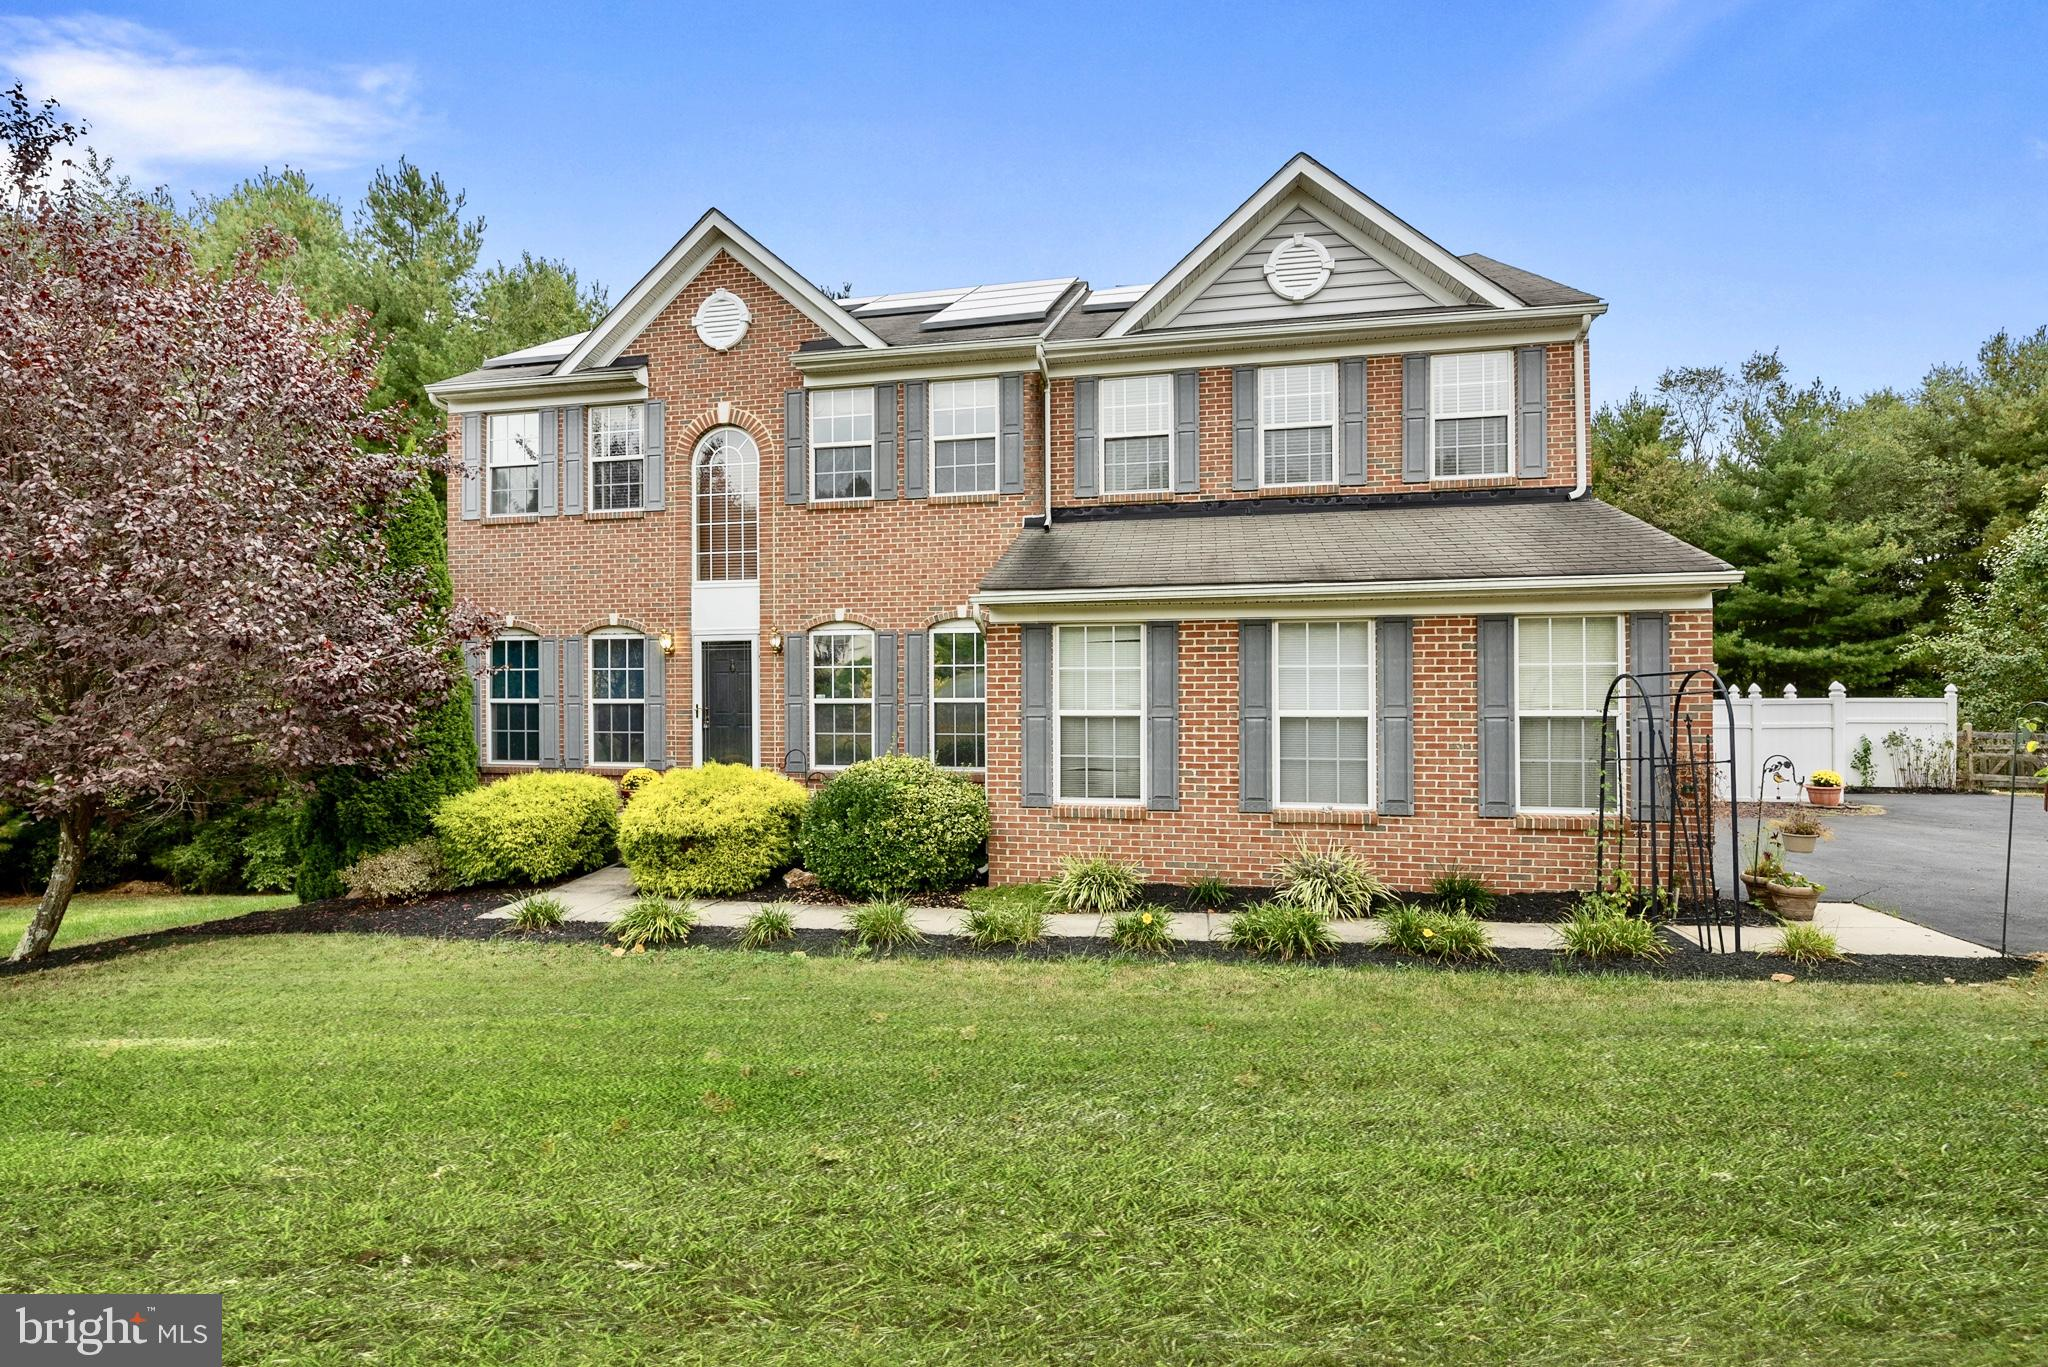 6 SPRING KNOLL COURT, COLORA, MD 21917